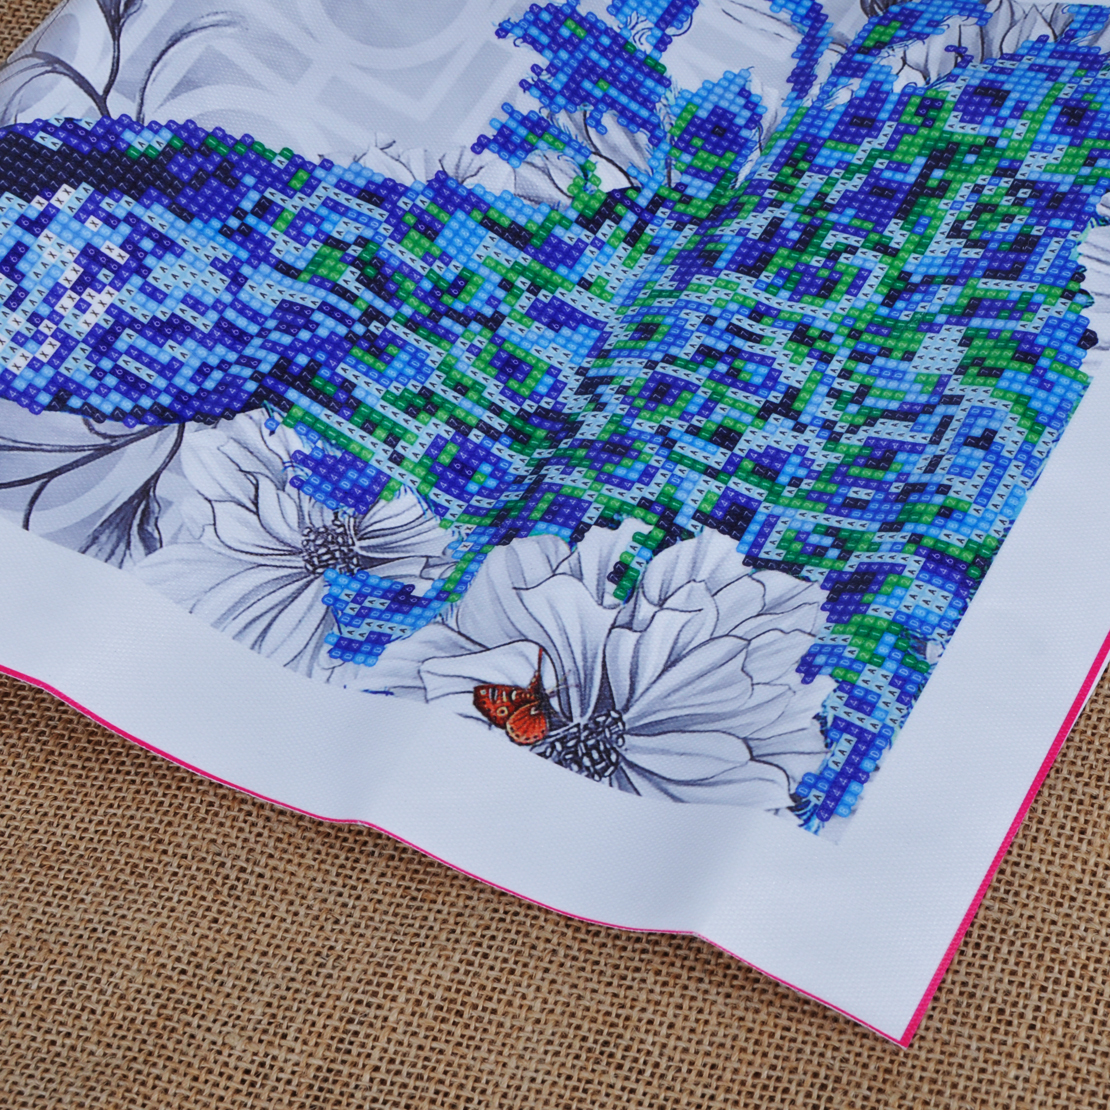 D diamond embroidery painting diy peacock mosaic stitch